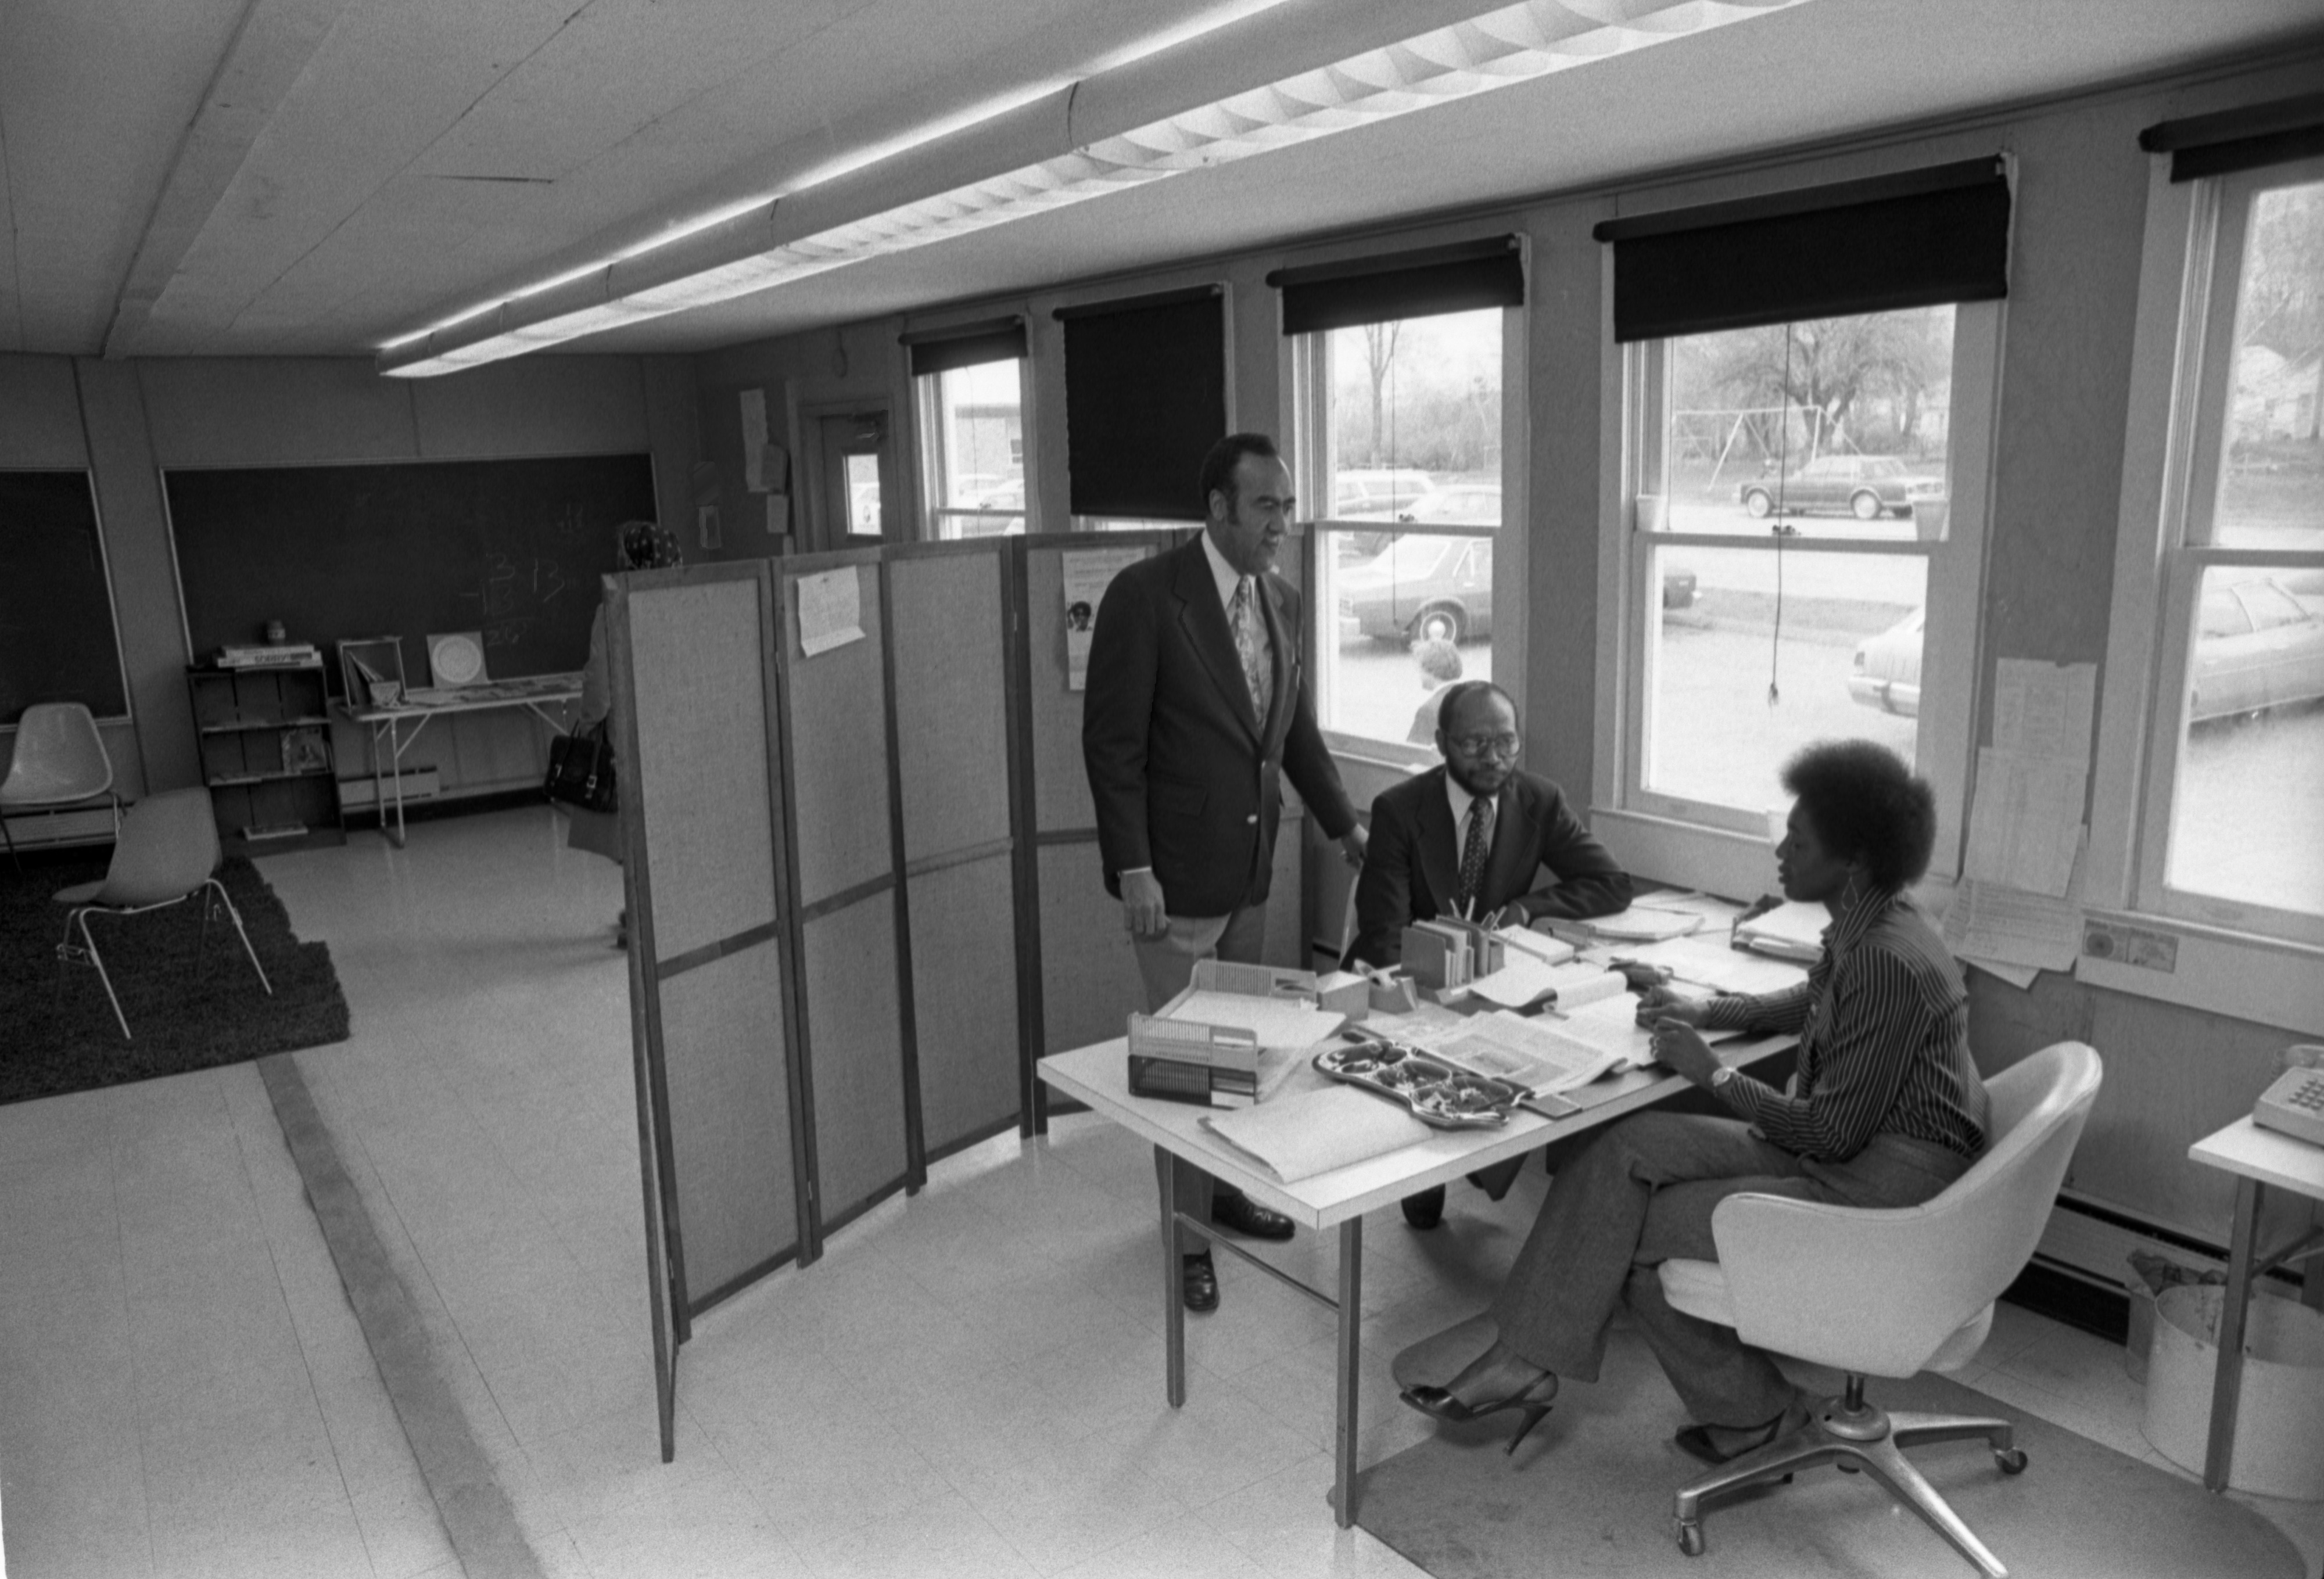 Walter Hill With Ann Arbor Community Center Staff At Their North Side Branch, April 30, 1979 image